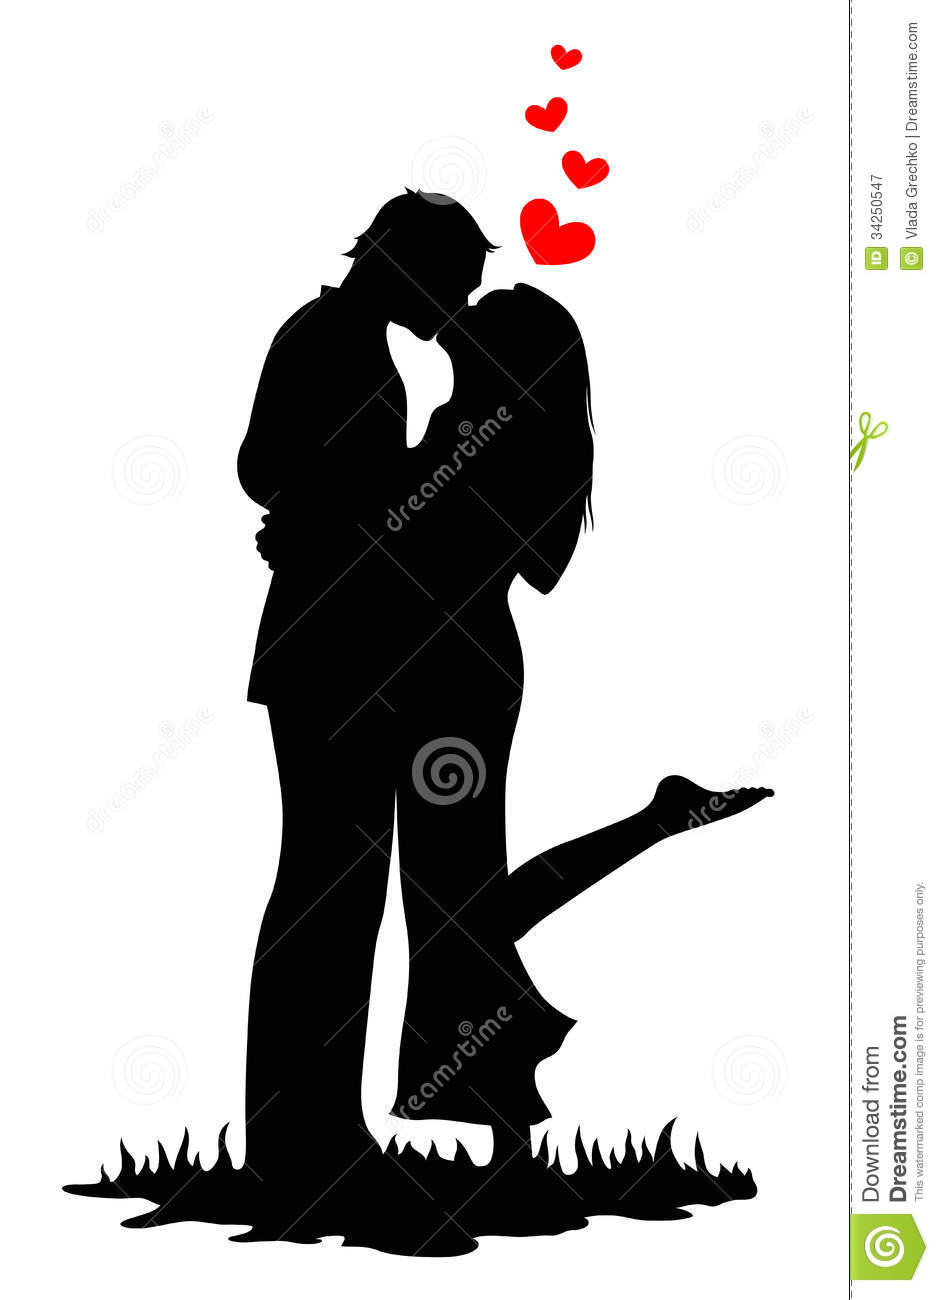 Kissing Lovers Royalty Free Stock Photography - Image: 34250547